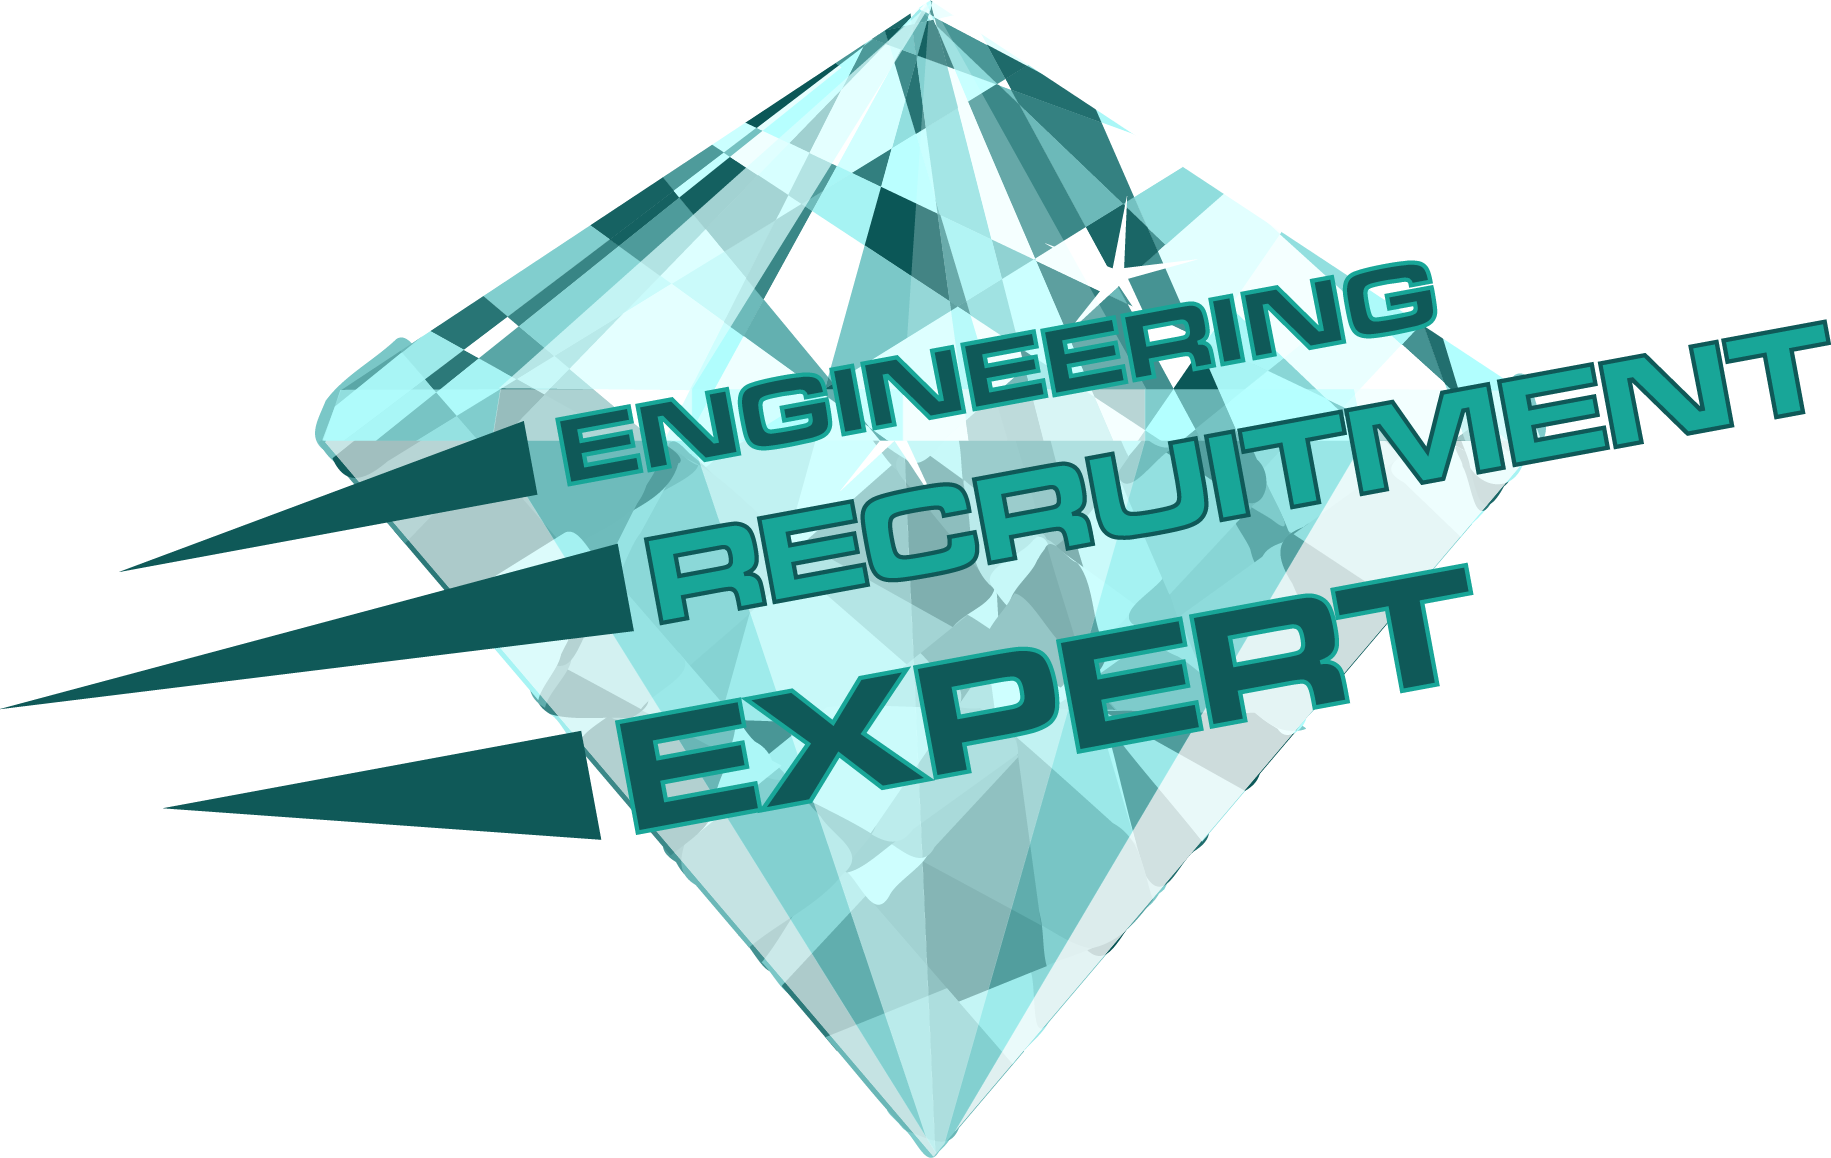 Engineering Recruitment Expert